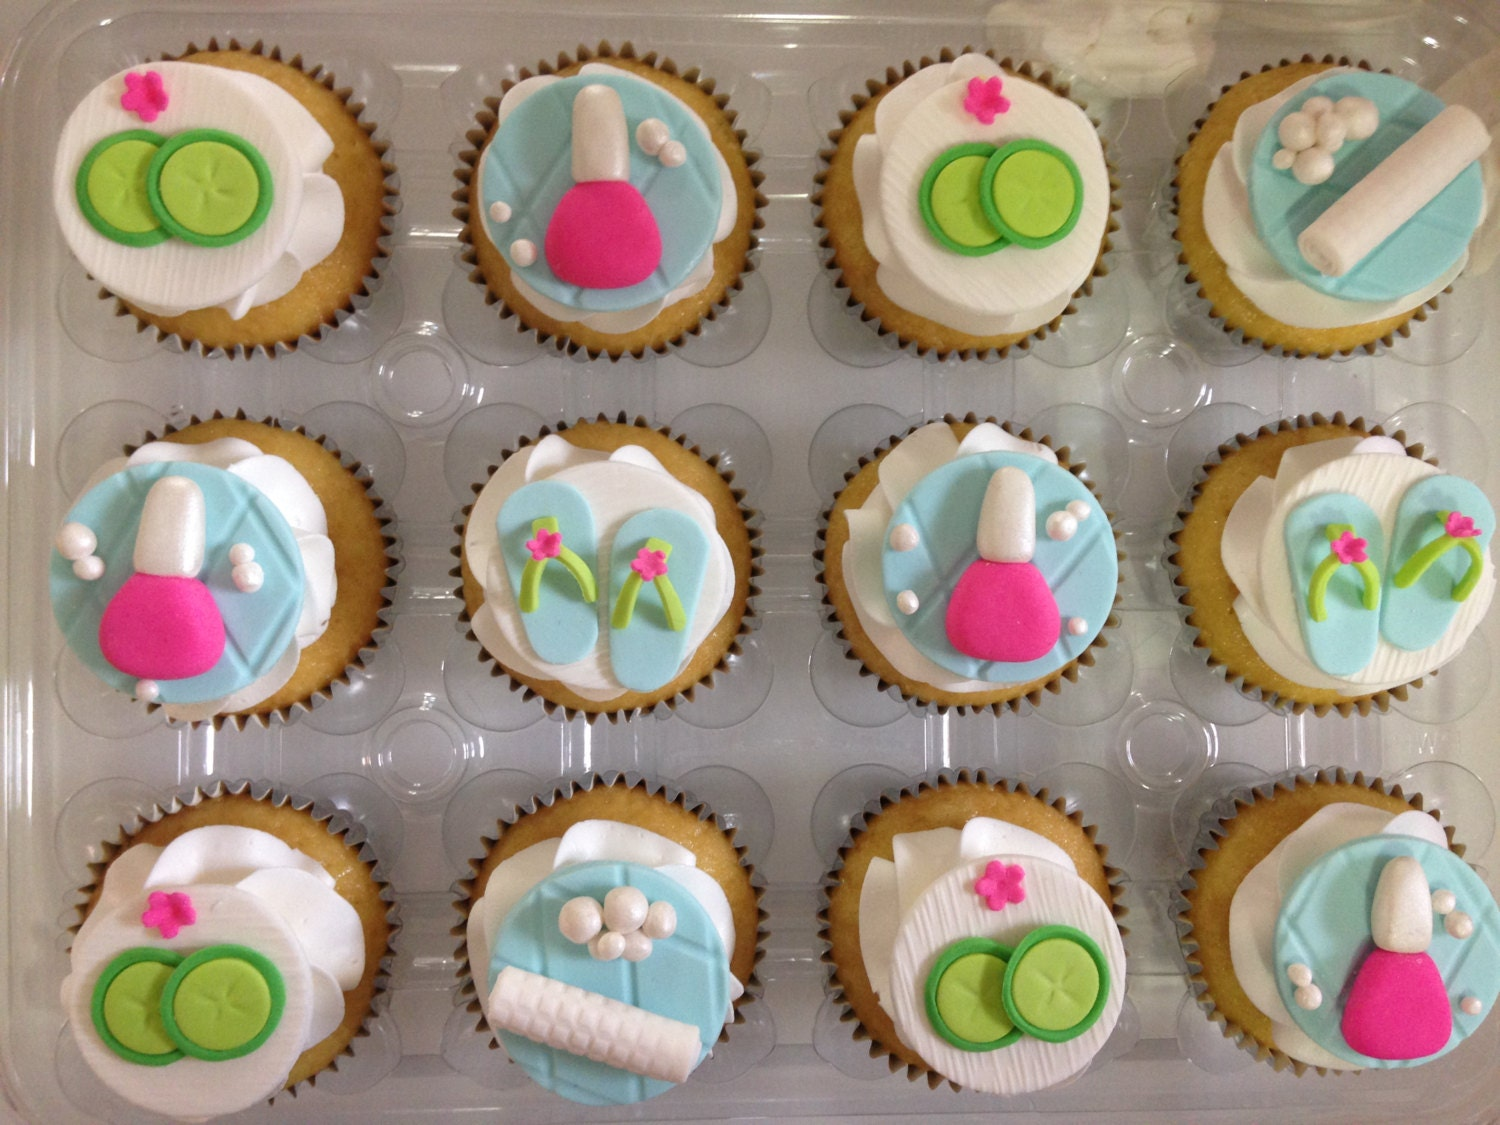 Pamper Party Cake Toppers